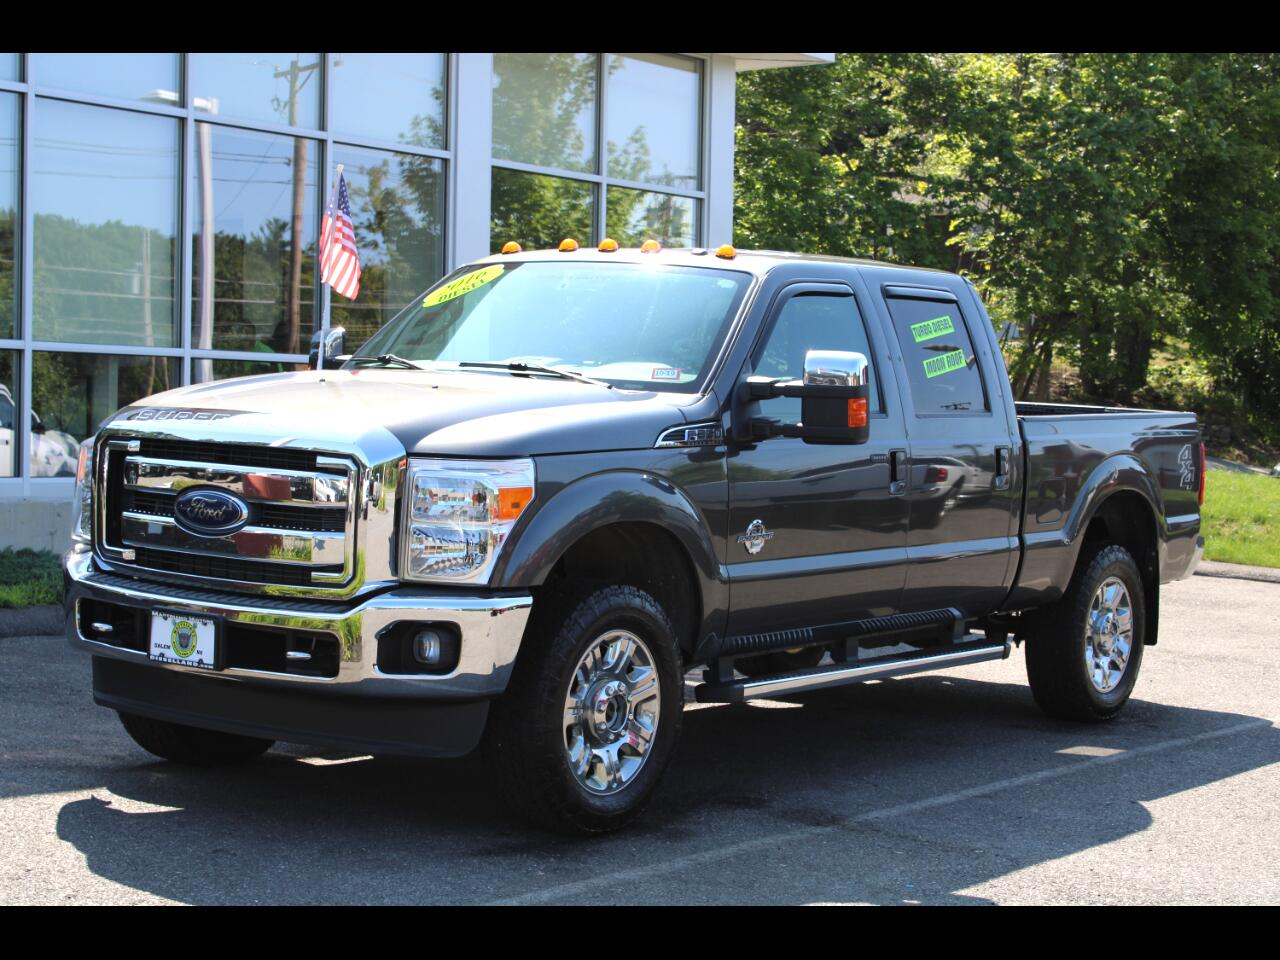 2016 Ford F-350 SD CREW CAB POWERSTROKE DIESEL LARIAT LOADED !!!